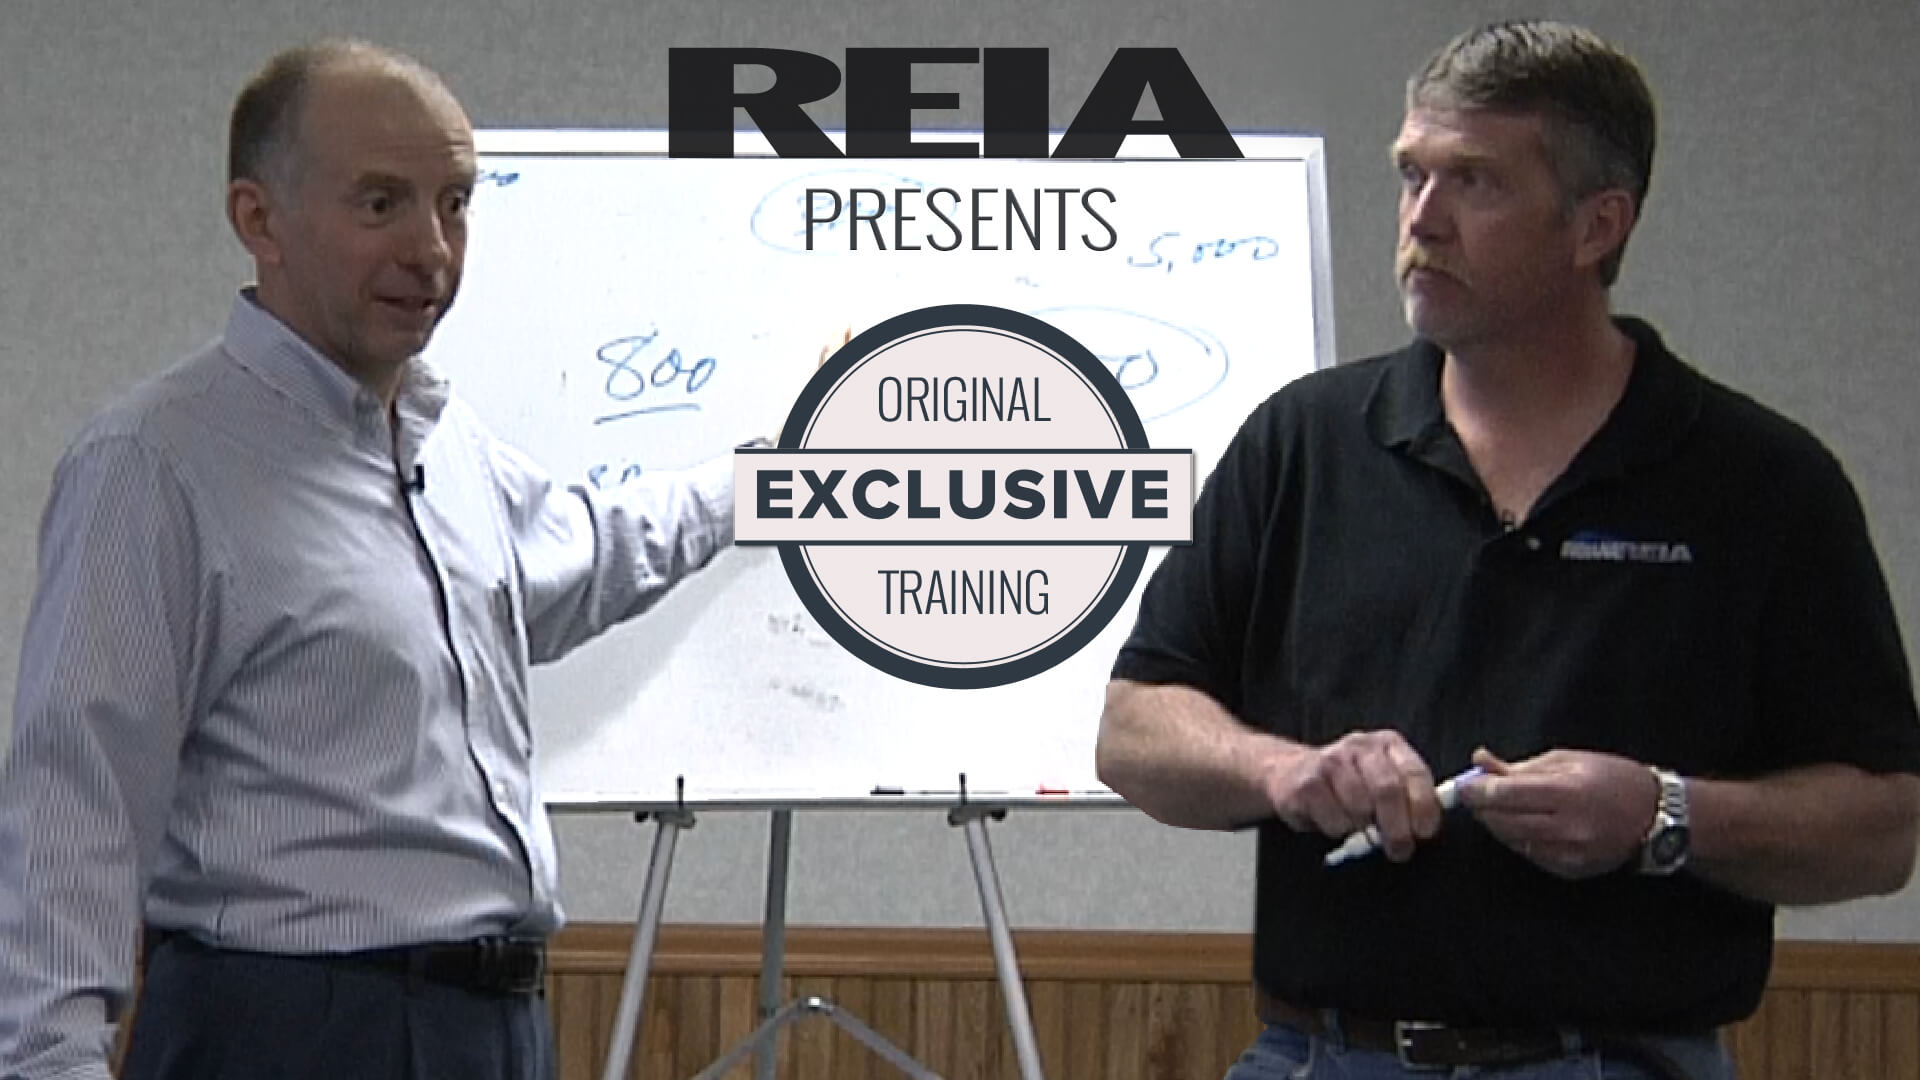 Learn profitable real estate investing from two Seasoned Investors teaching advanced deal analyzing and negotiations for creative real estate investing to invest and flip houses using seller financing for maximum investing profits with no money down.